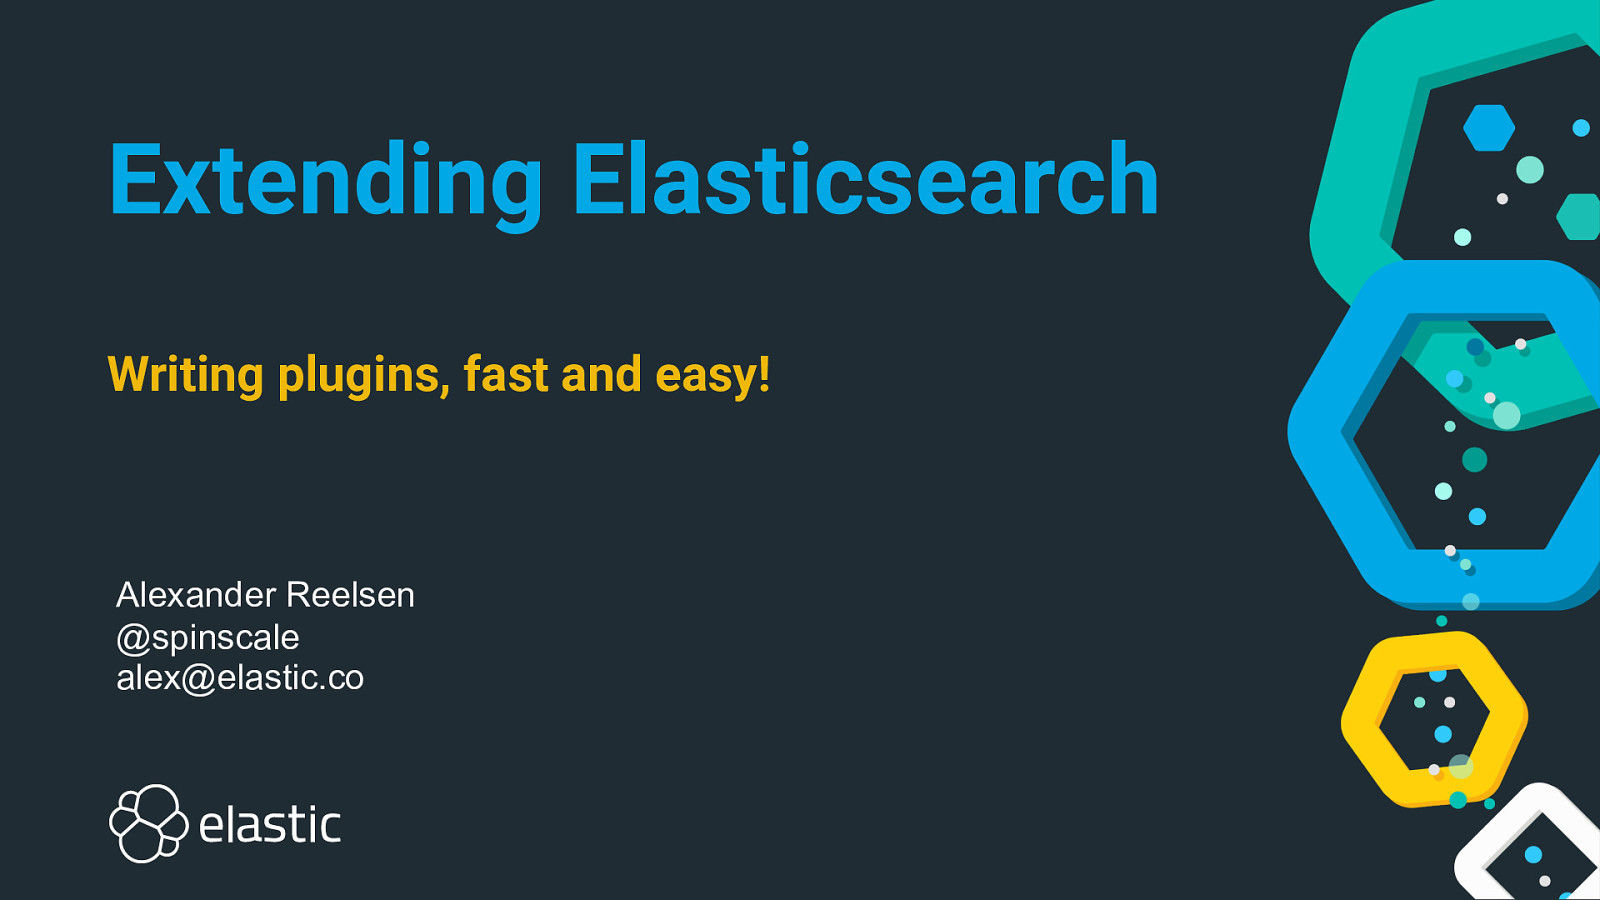 Extending Elasticsearch - Writing plugins, fast and easy!